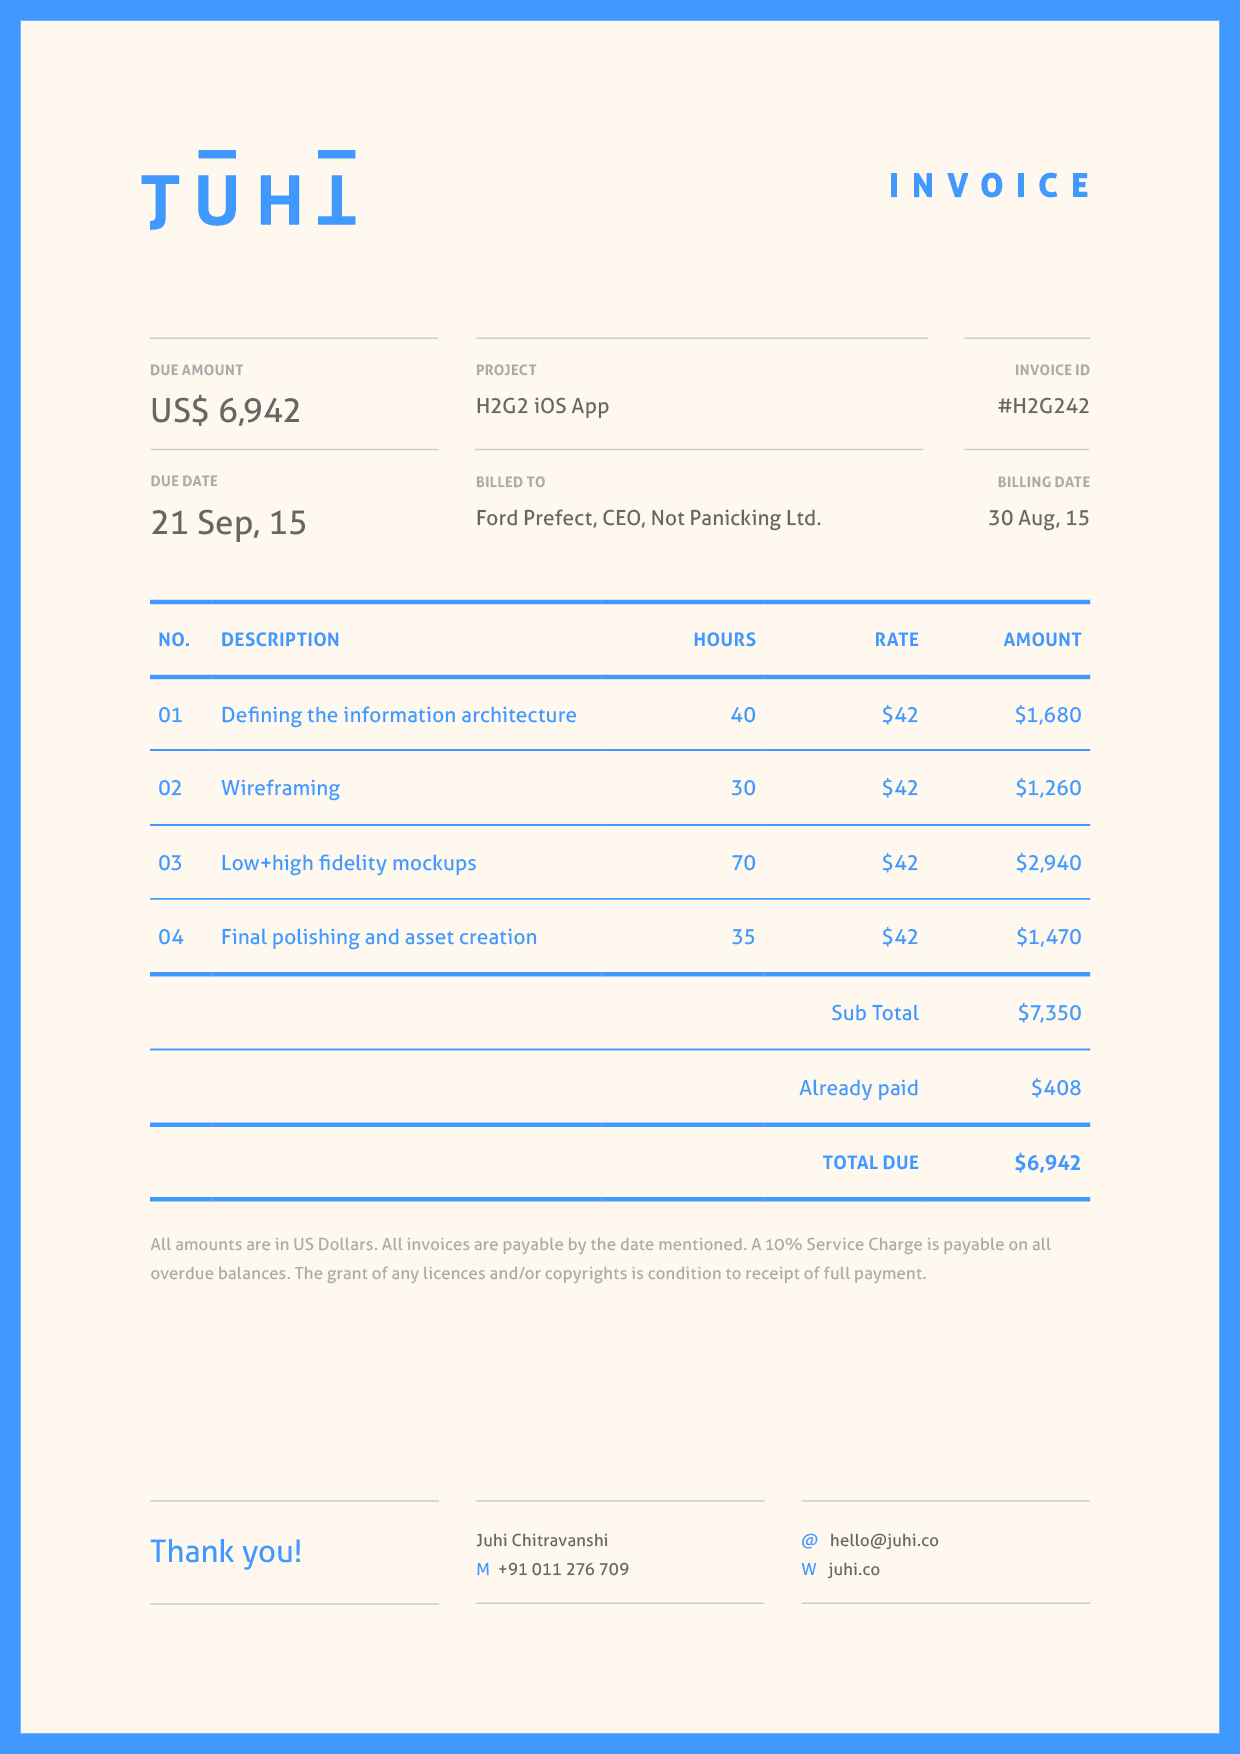 Usdgus  Winsome Dont Hold Back On Your Invoice  Inspiring Designs  With Inspiring Invoice By Juhi Chitravanshi Follow With Comely Philadelphia Taxi Receipt Also State Gross Receipts Tax In Addition Receipt Generator Free And Cheap Receipt Paper As Well As Rent Receipt Template India Additionally Bpa Cash Register Receipts From Inspirationfeedcom With Usdgus  Inspiring Dont Hold Back On Your Invoice  Inspiring Designs  With Comely Invoice By Juhi Chitravanshi Follow And Winsome Philadelphia Taxi Receipt Also State Gross Receipts Tax In Addition Receipt Generator Free From Inspirationfeedcom